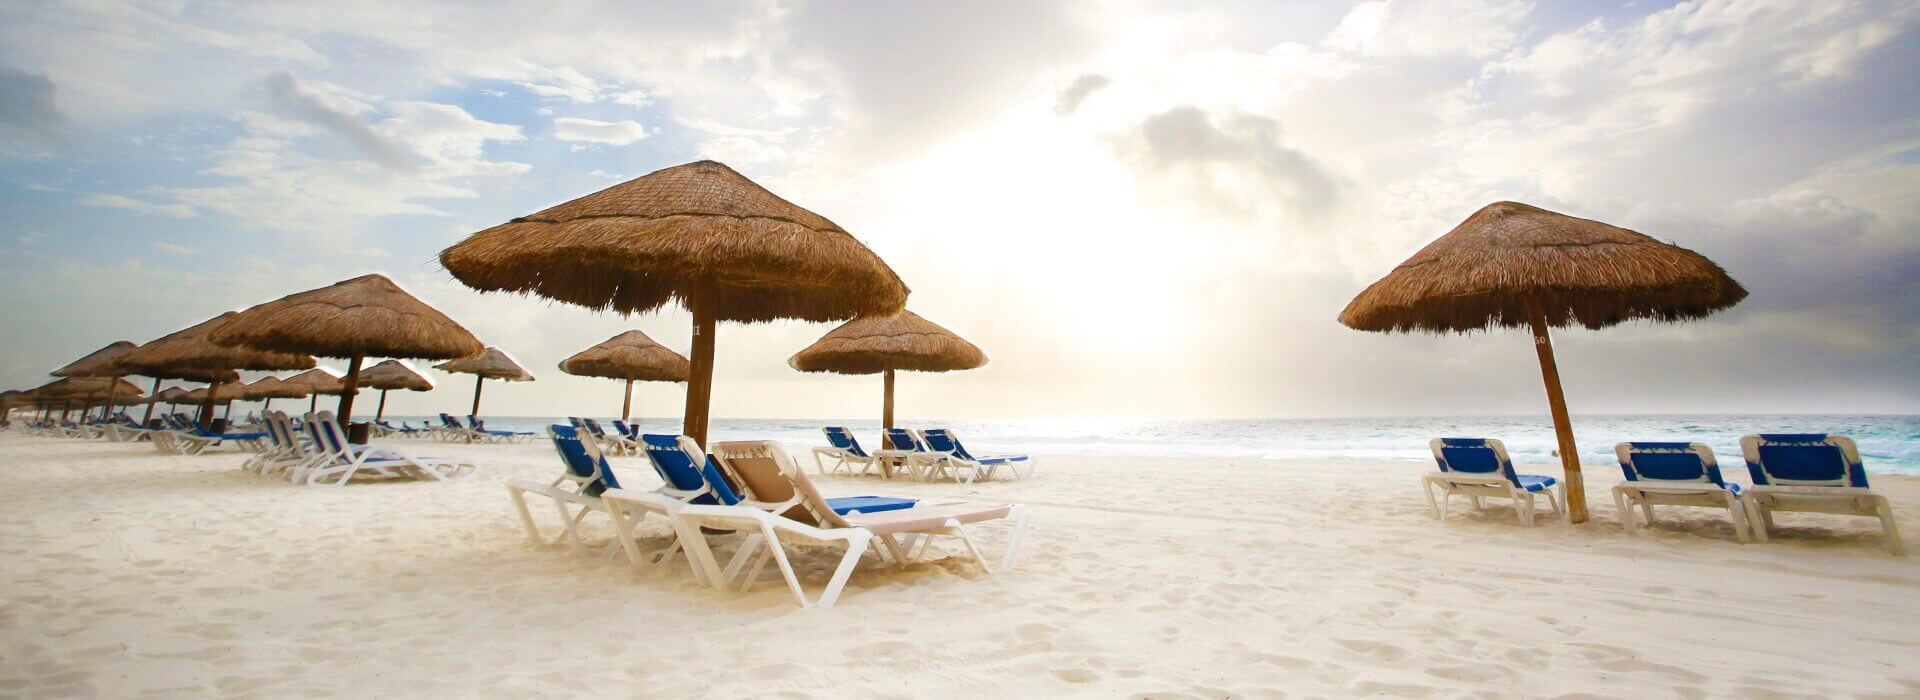 All Inclusive Cancun Resorts